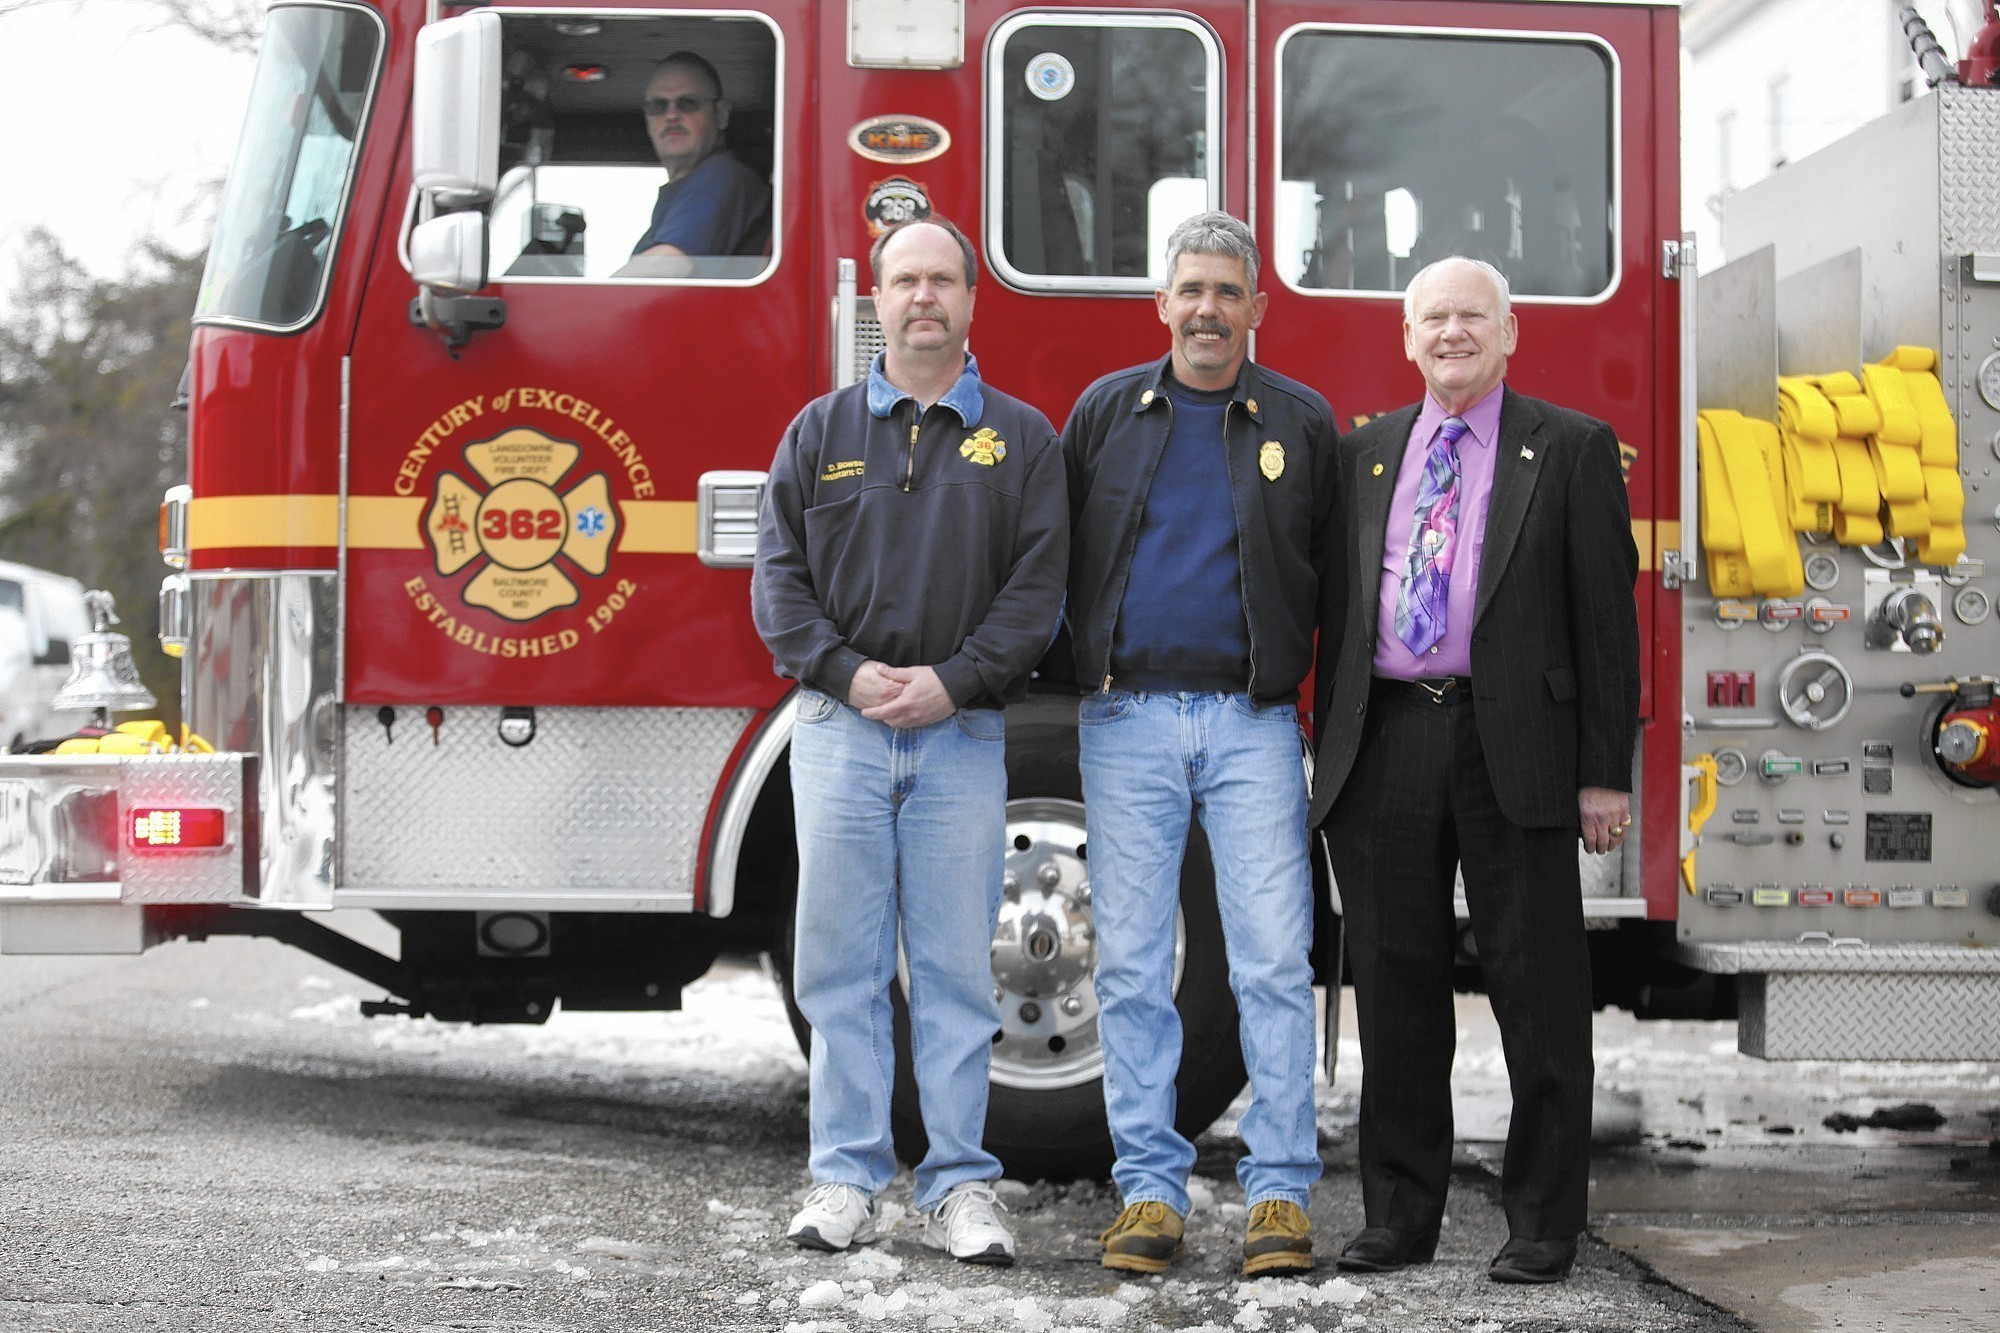 Volunteer firefighters respond to potential closings, mergers of